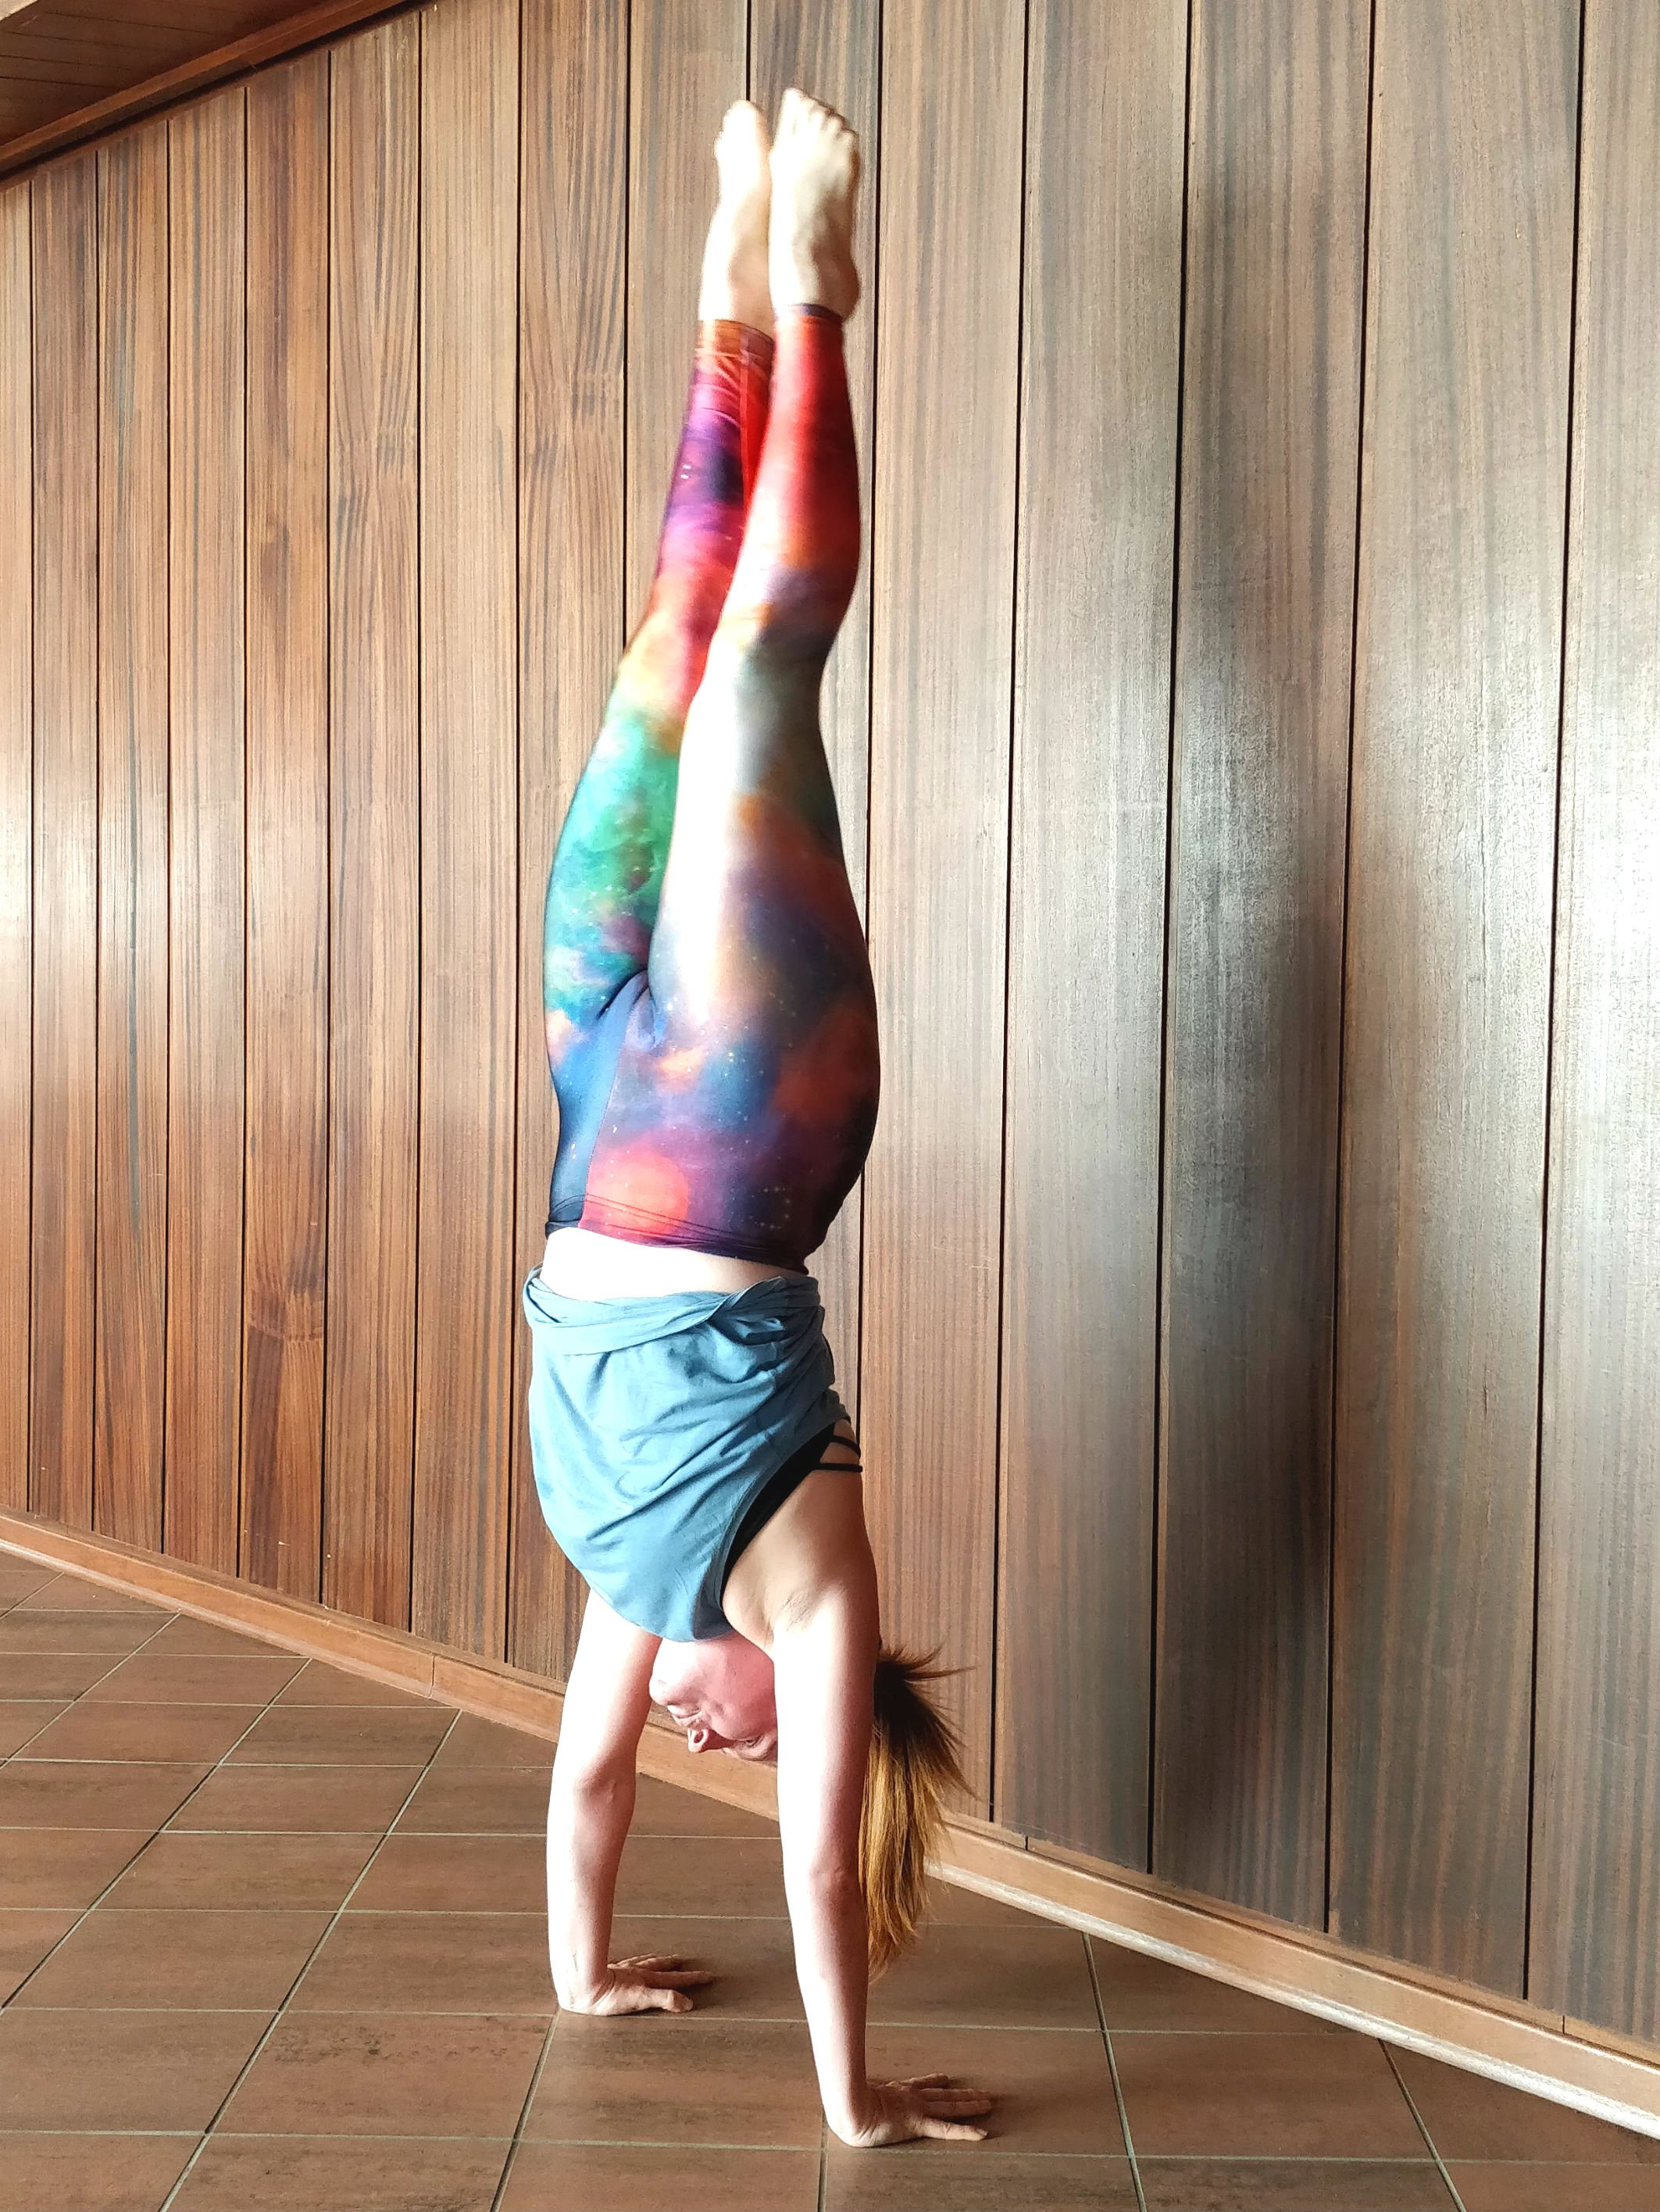 Working on my gymnastic style handstand